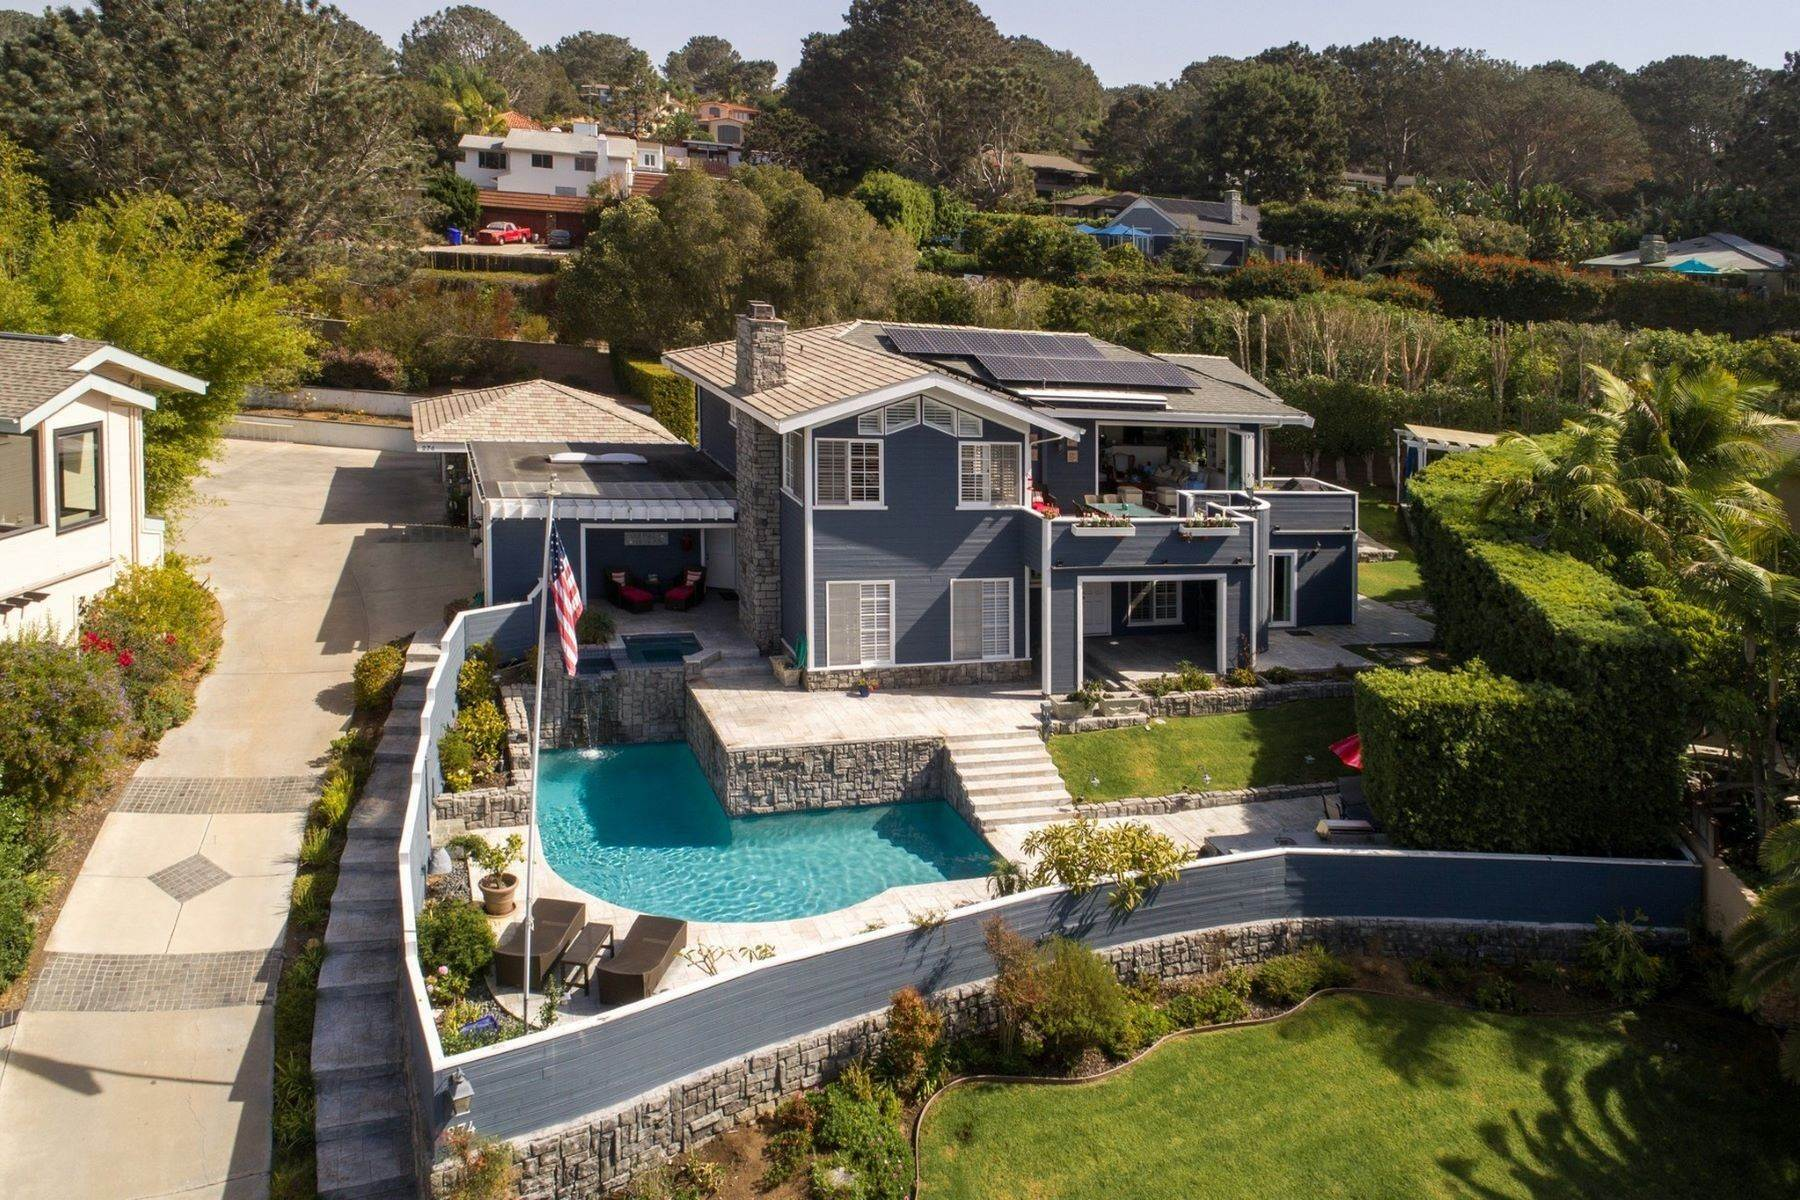 Single Family Homes for Active at 274 Stratford Park Circle, Del Mar, CA 92014 274 Stratford Park Circle Del Mar, California 92014 United States